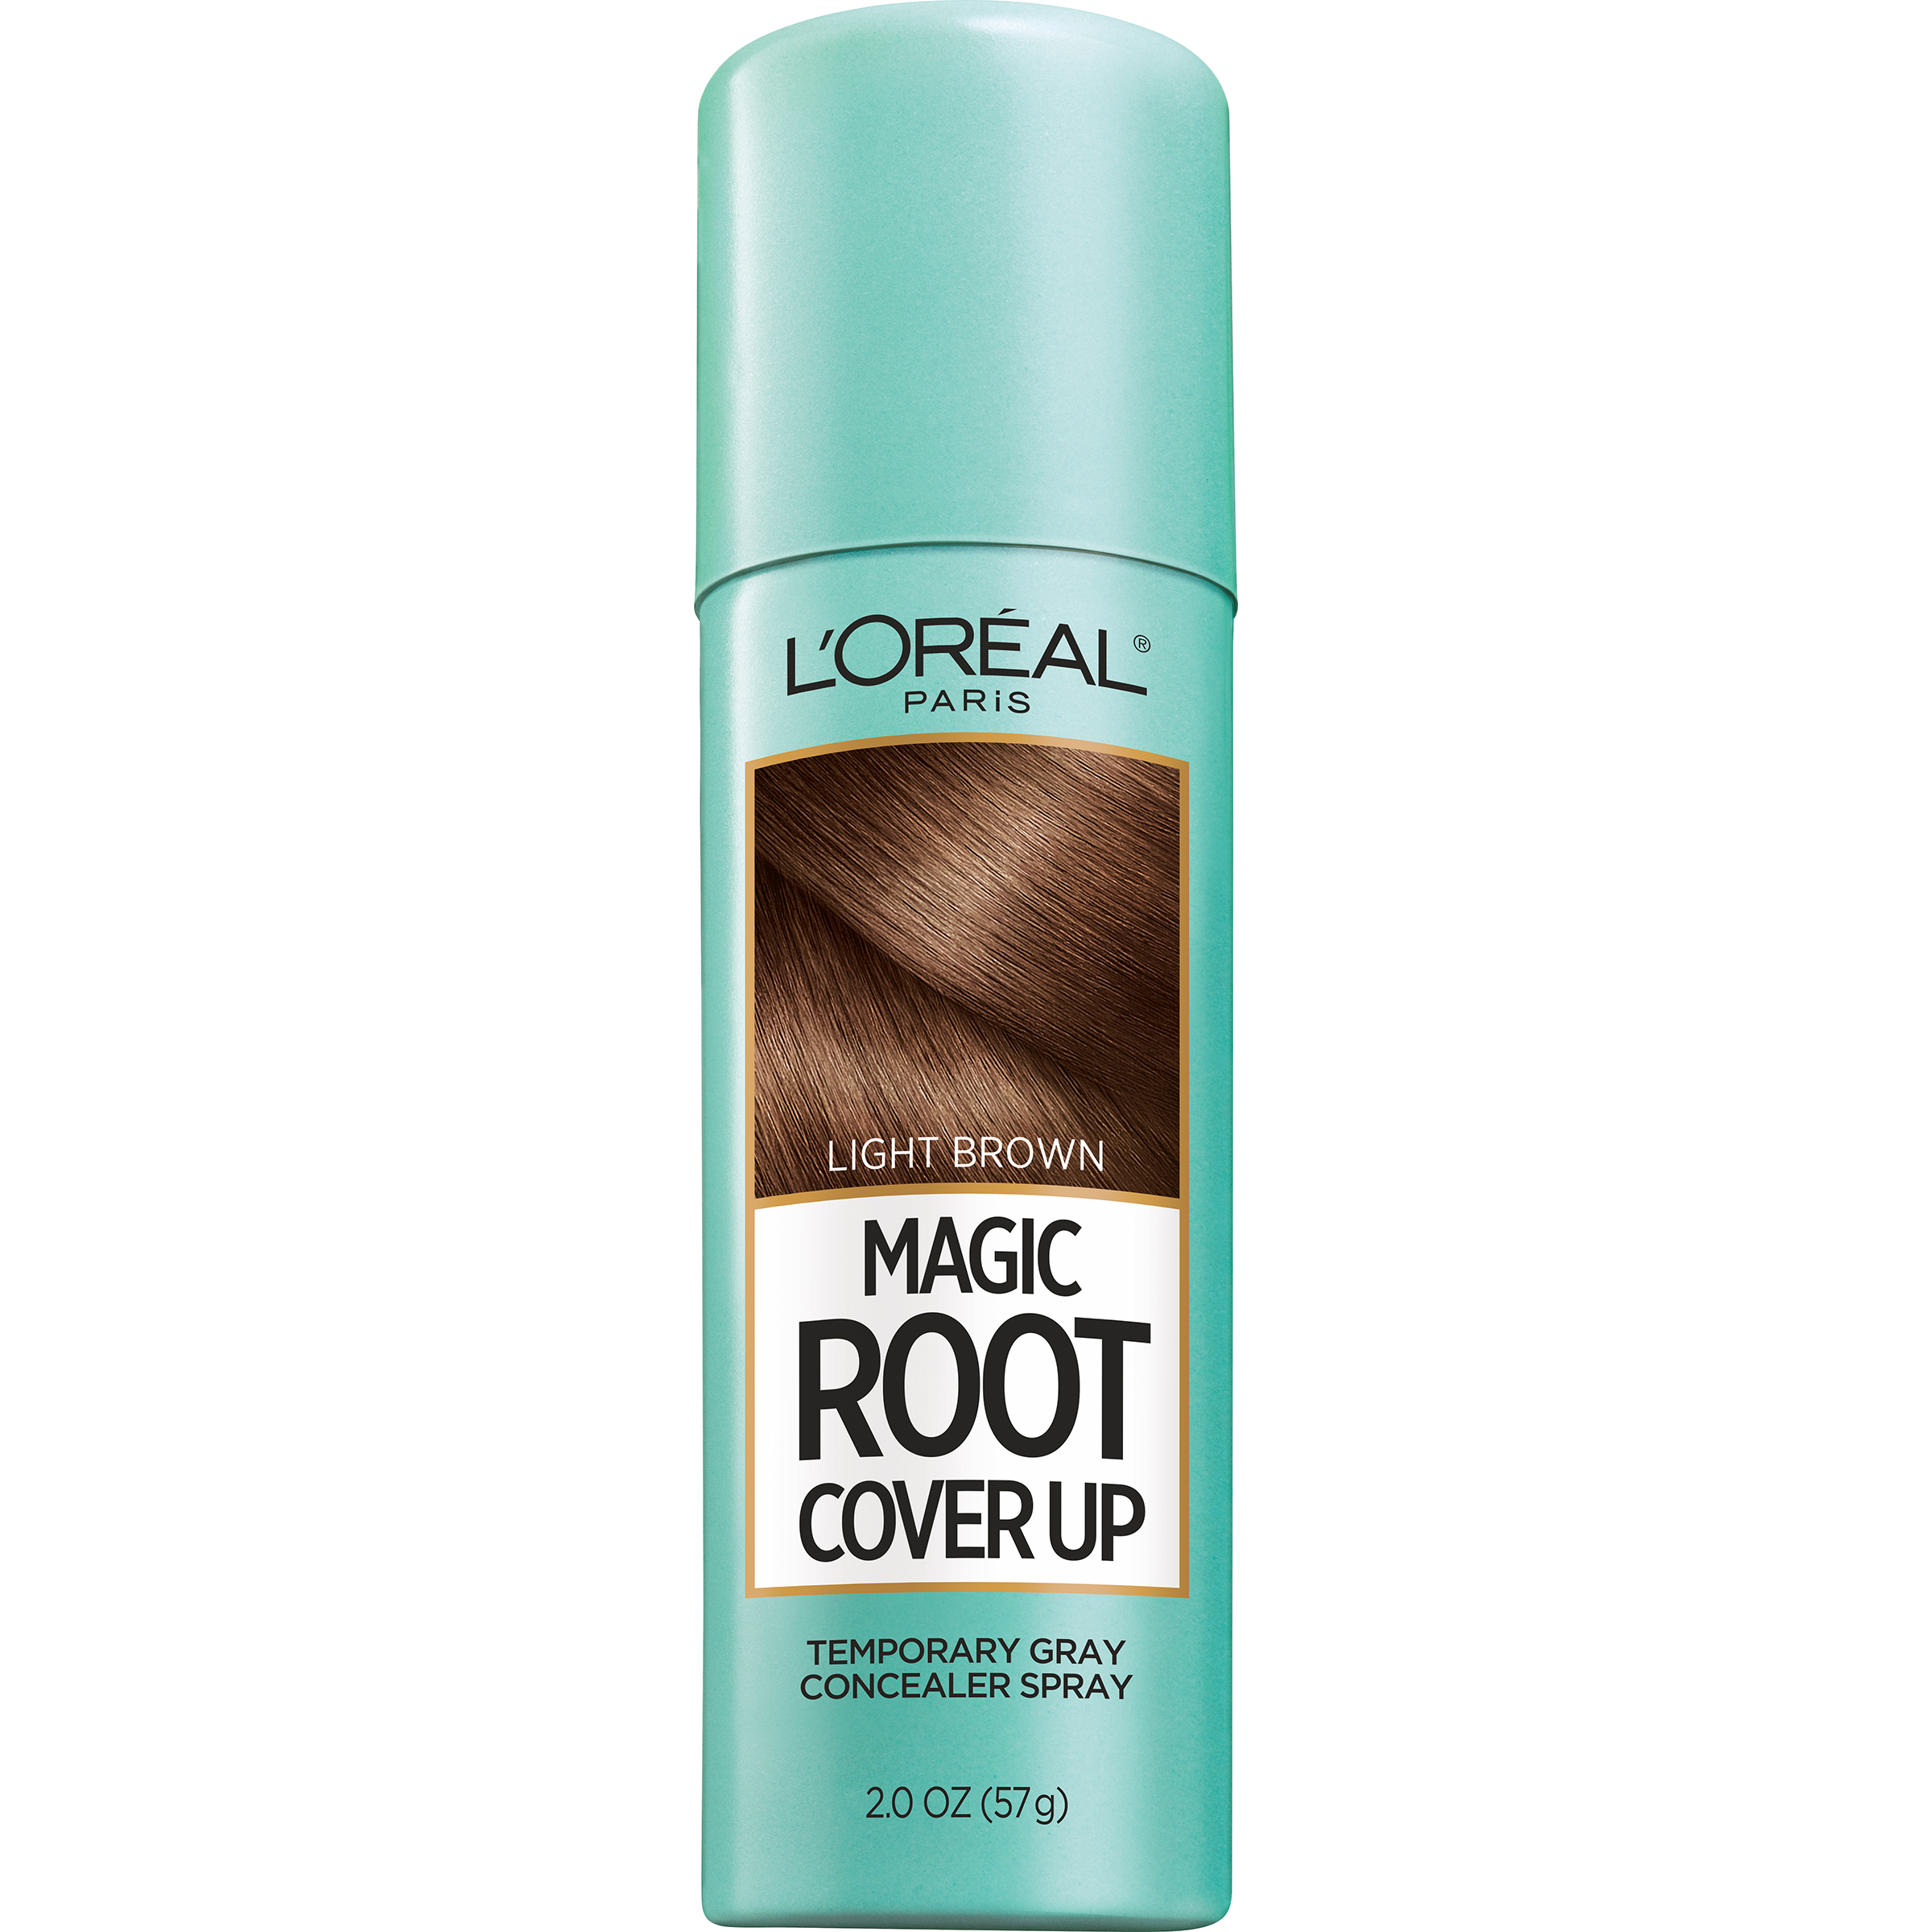 LOreal Paris Magic Root Cover Up Gray Concealer Hair Spray Light Brown